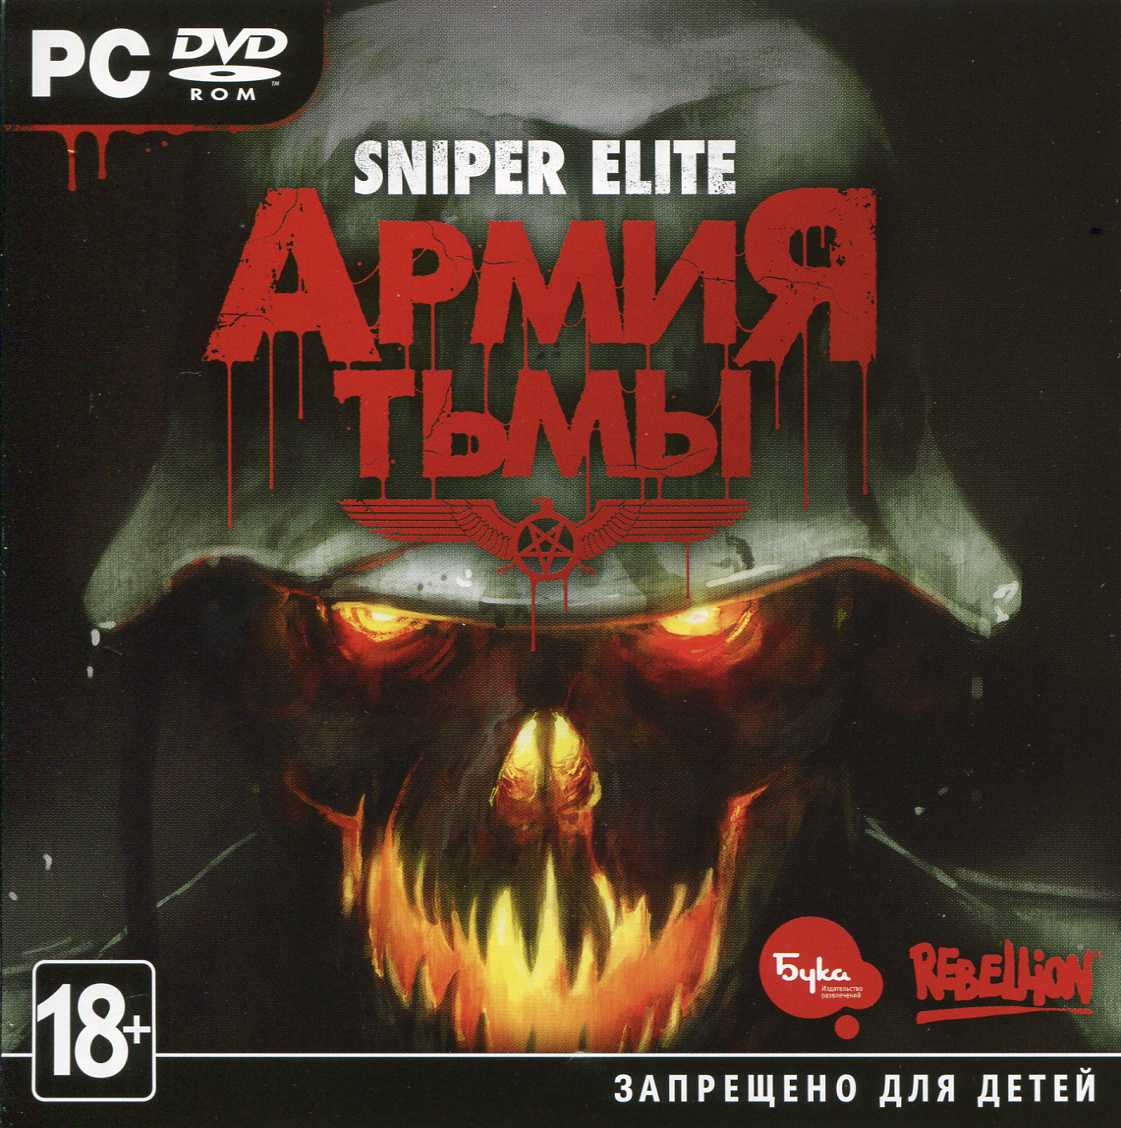 SNIPER ELITE - STEAM - BUKA - CD-KEY